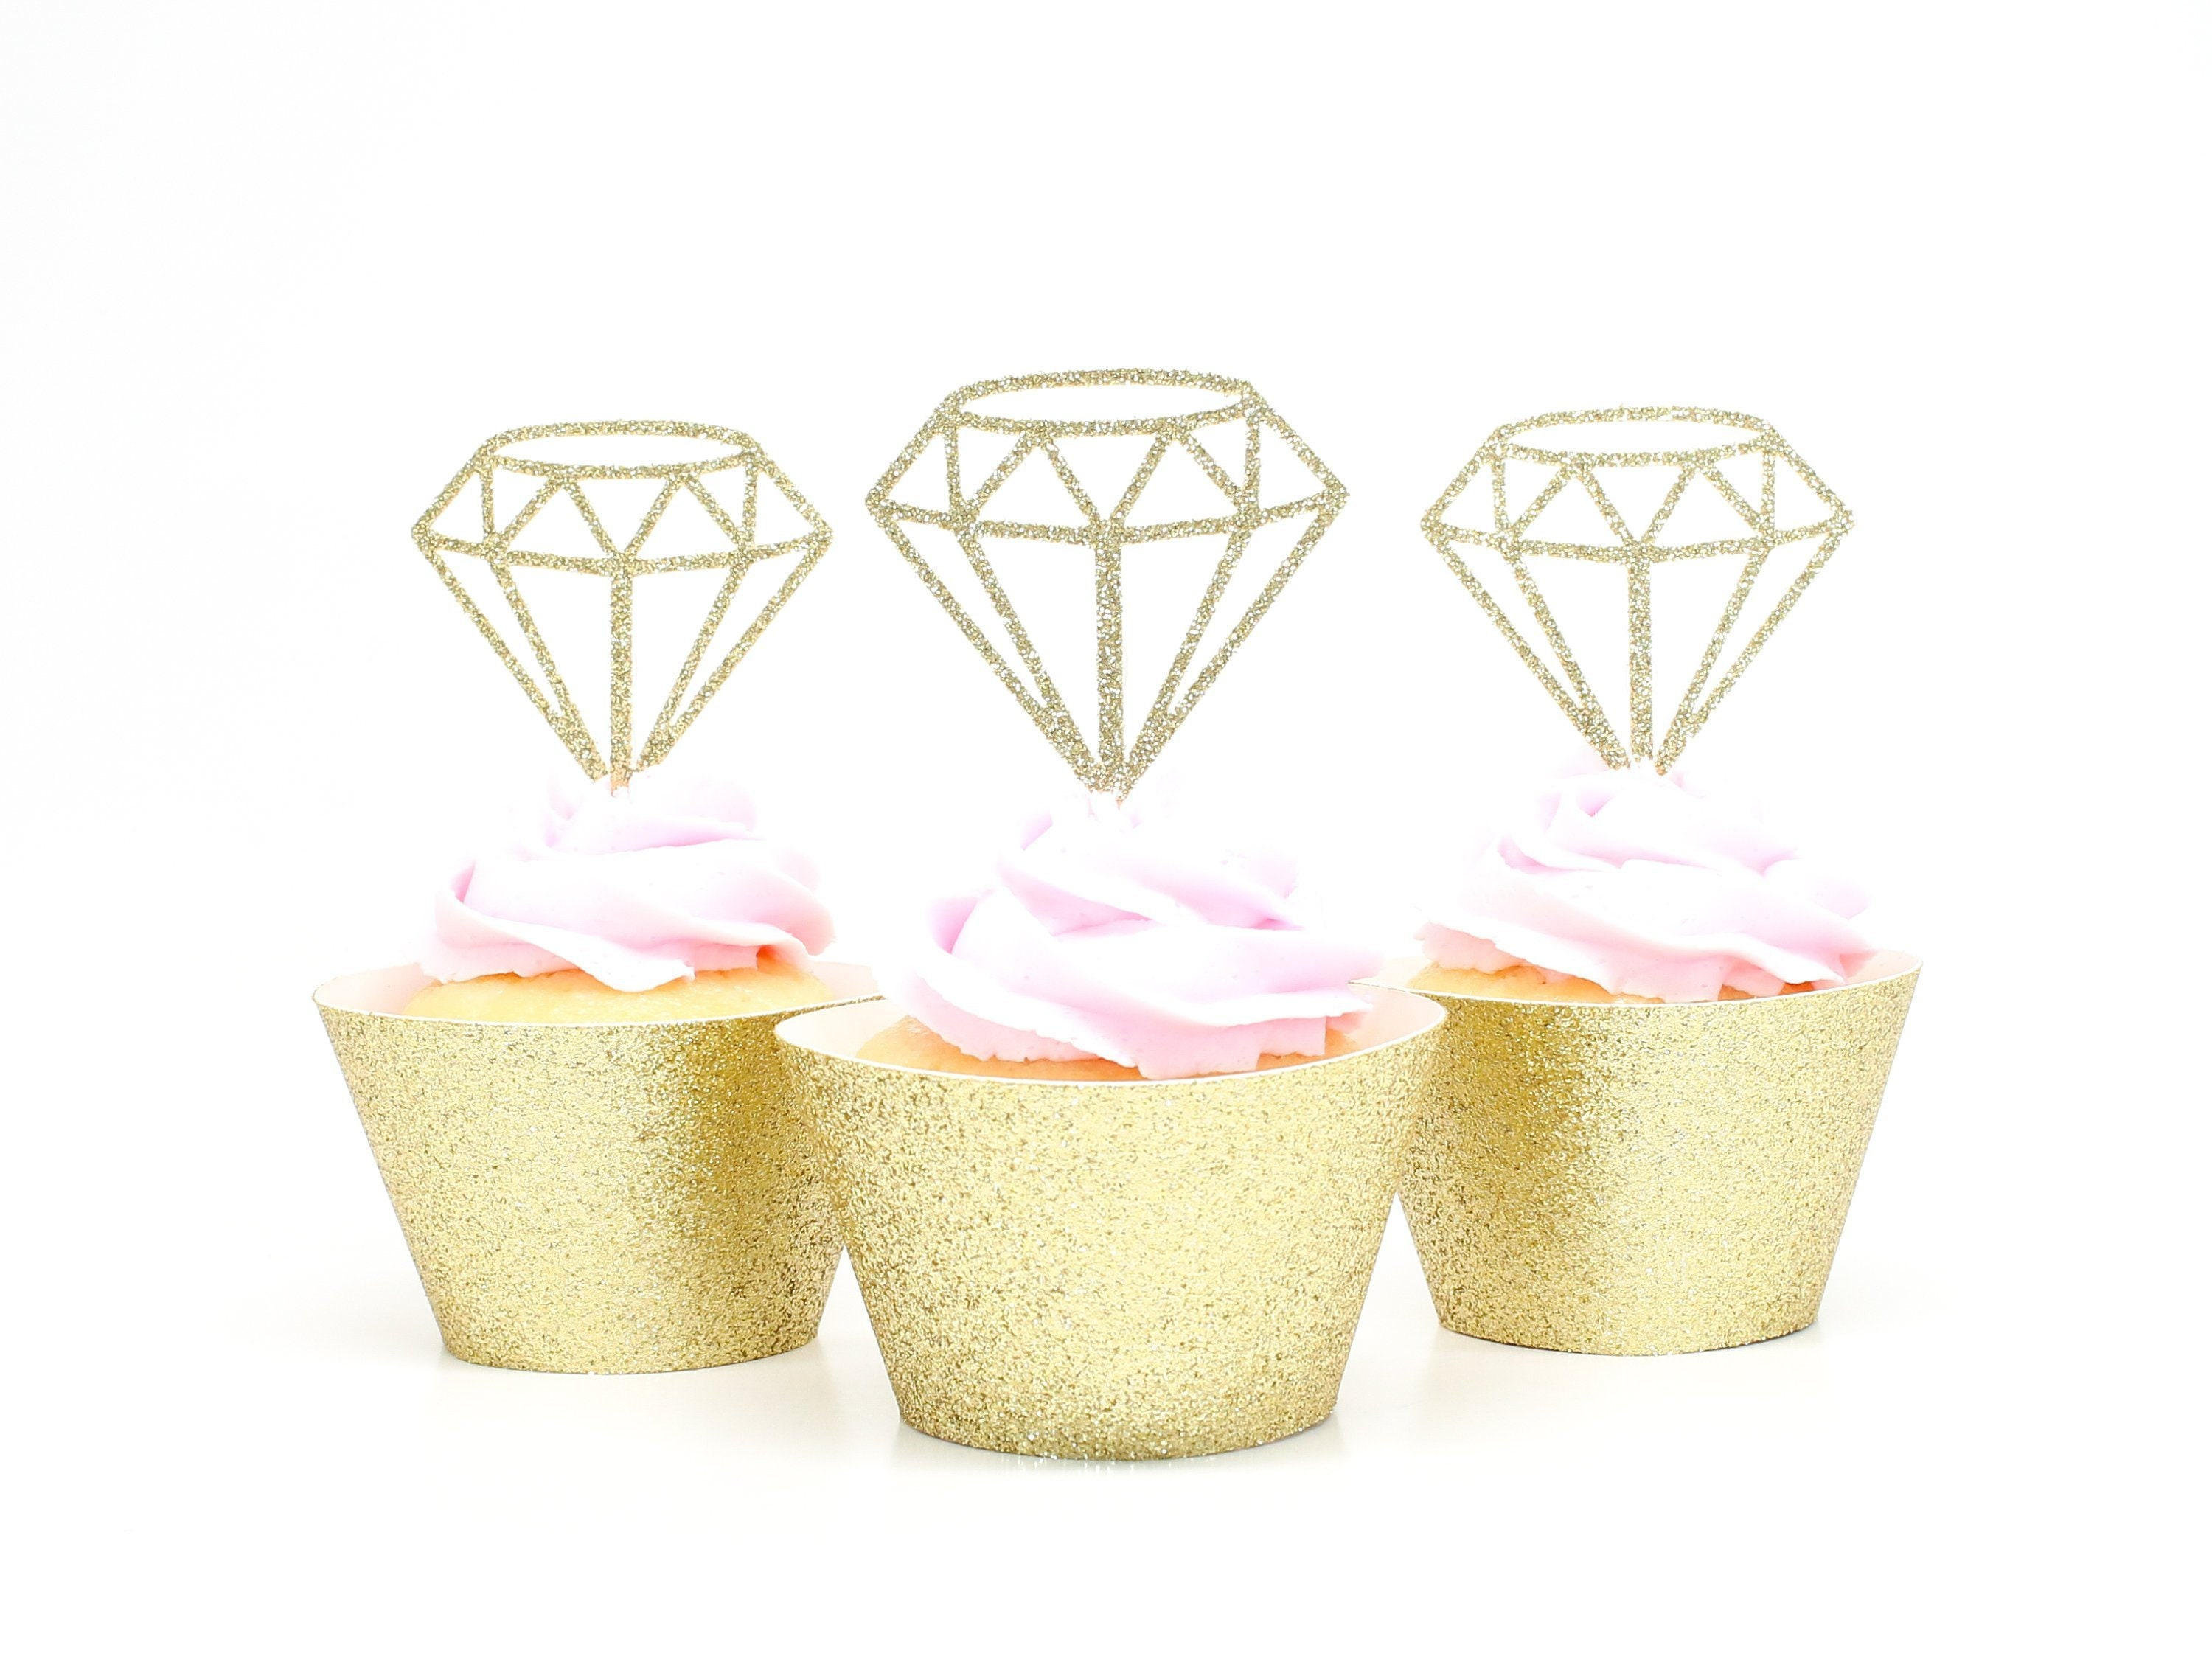 dbfe200f68391 Diamond Cupcake Toppers - Gold Glitter - Bachelorette Party ...